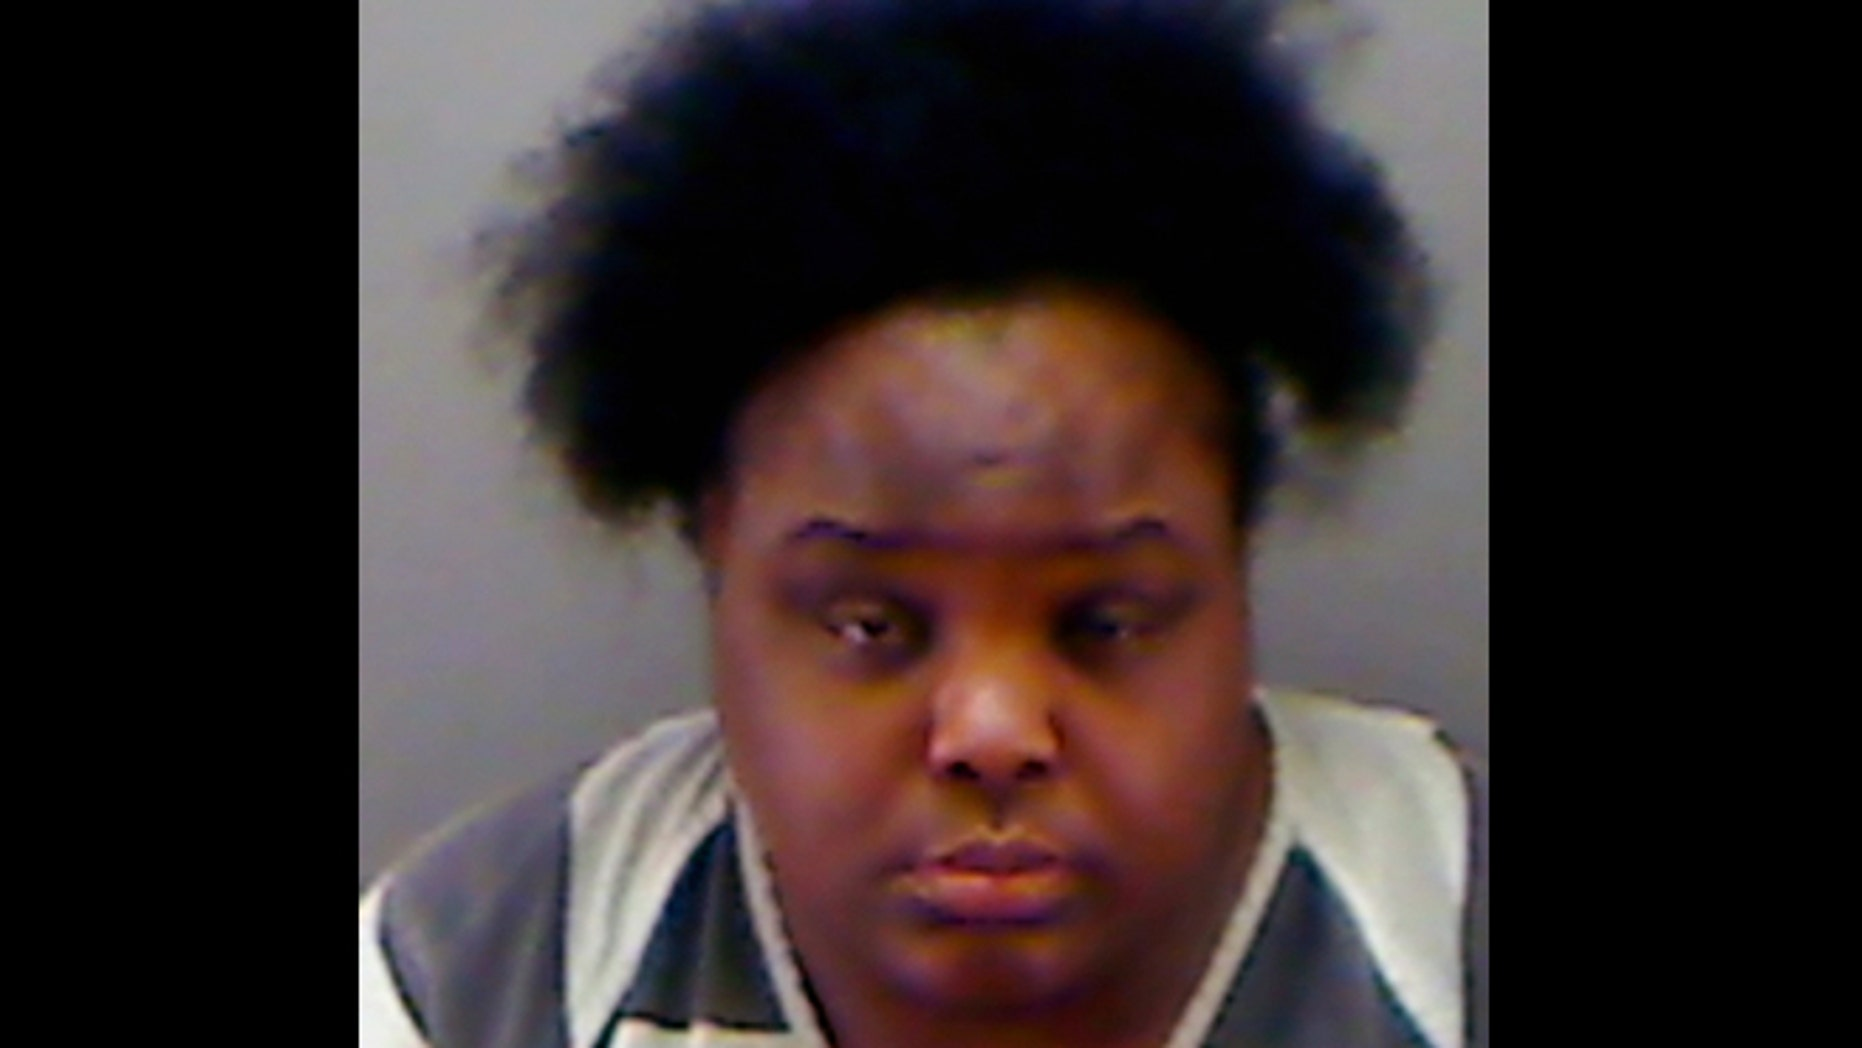 This undated booking photo provided by the Longview Police Department shows Charity Johnson. Authorities say Johnson, 34, posed as a teenager to enroll as a sophomore at a private Texas high school.